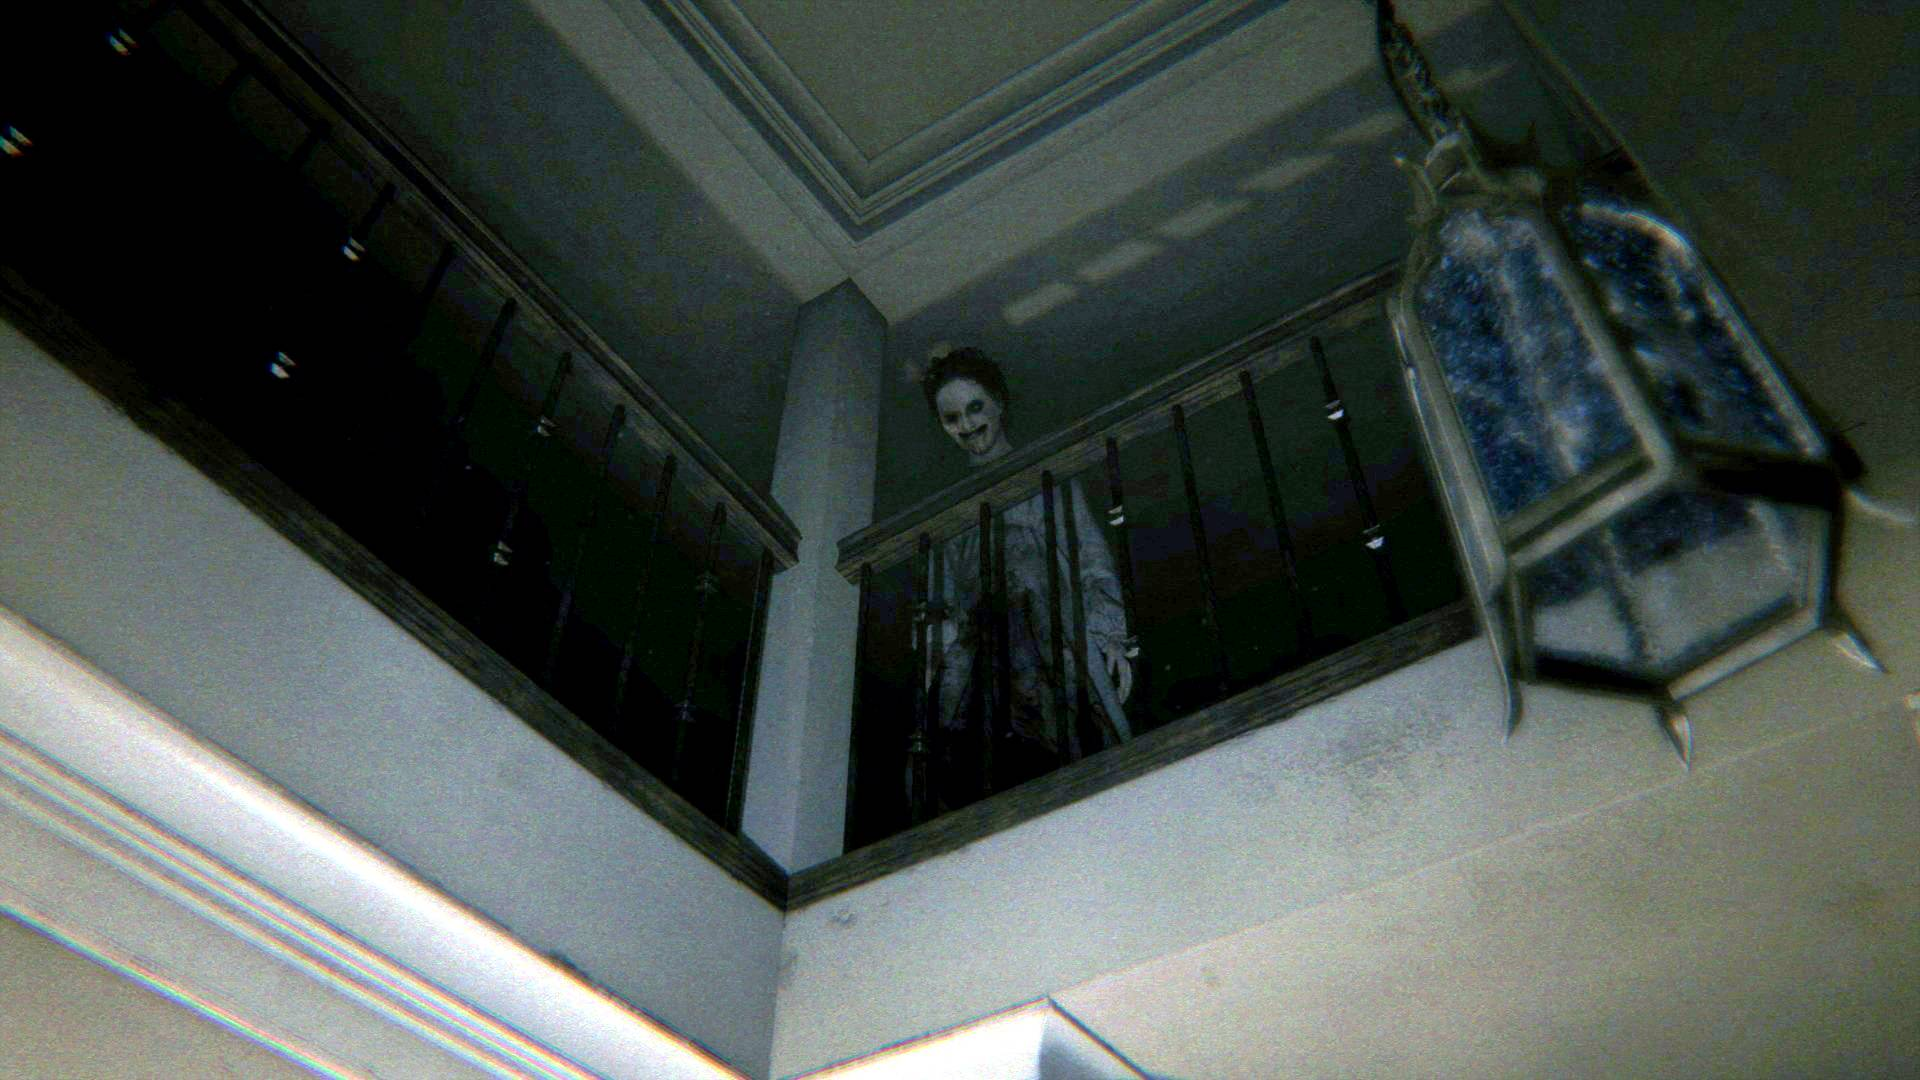 P.T. photos depict your everyday haunted house